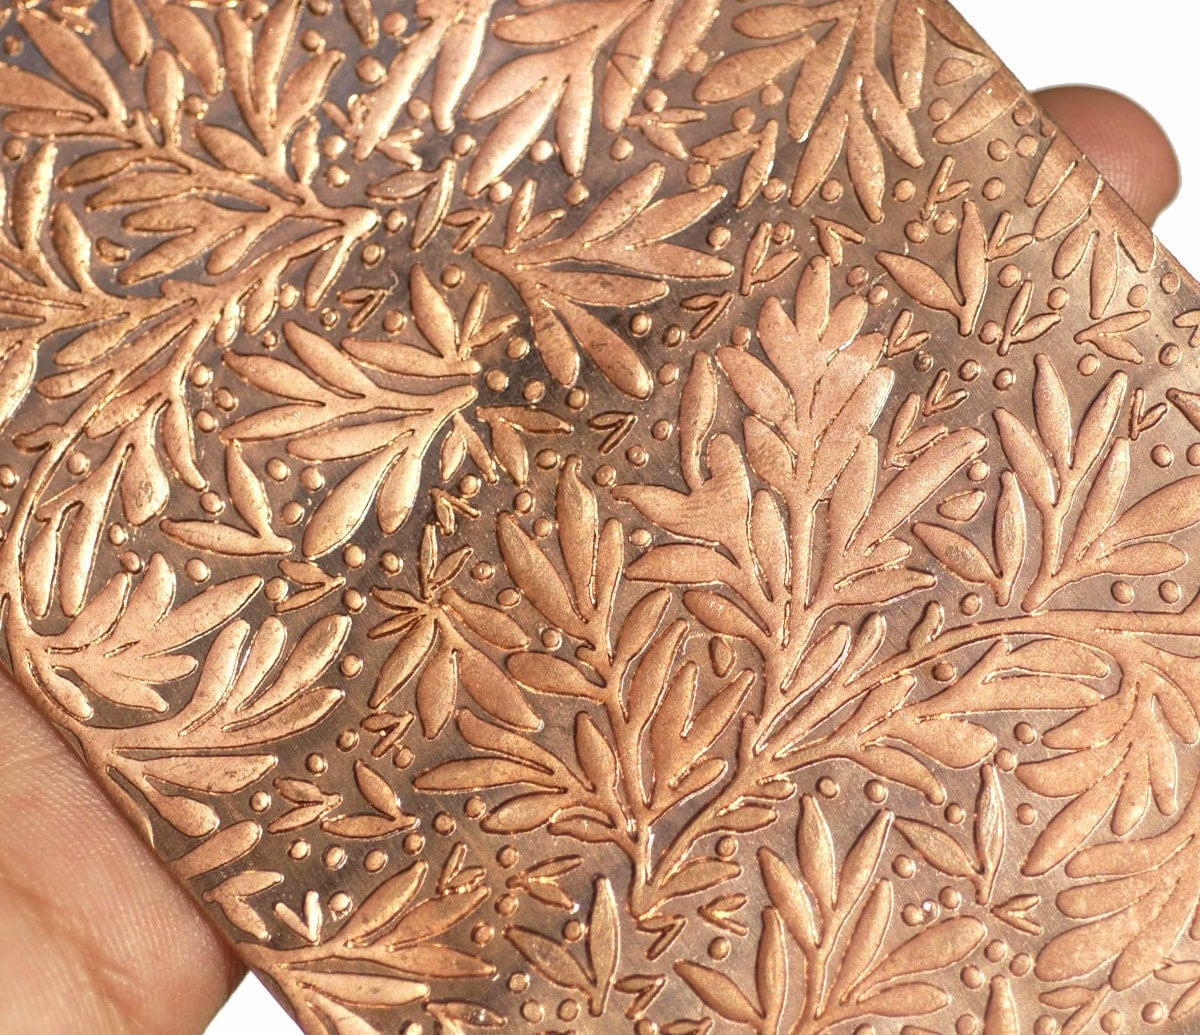 Copper Texture Metal Sheet Forest Of Leaves Pattern 18g 6